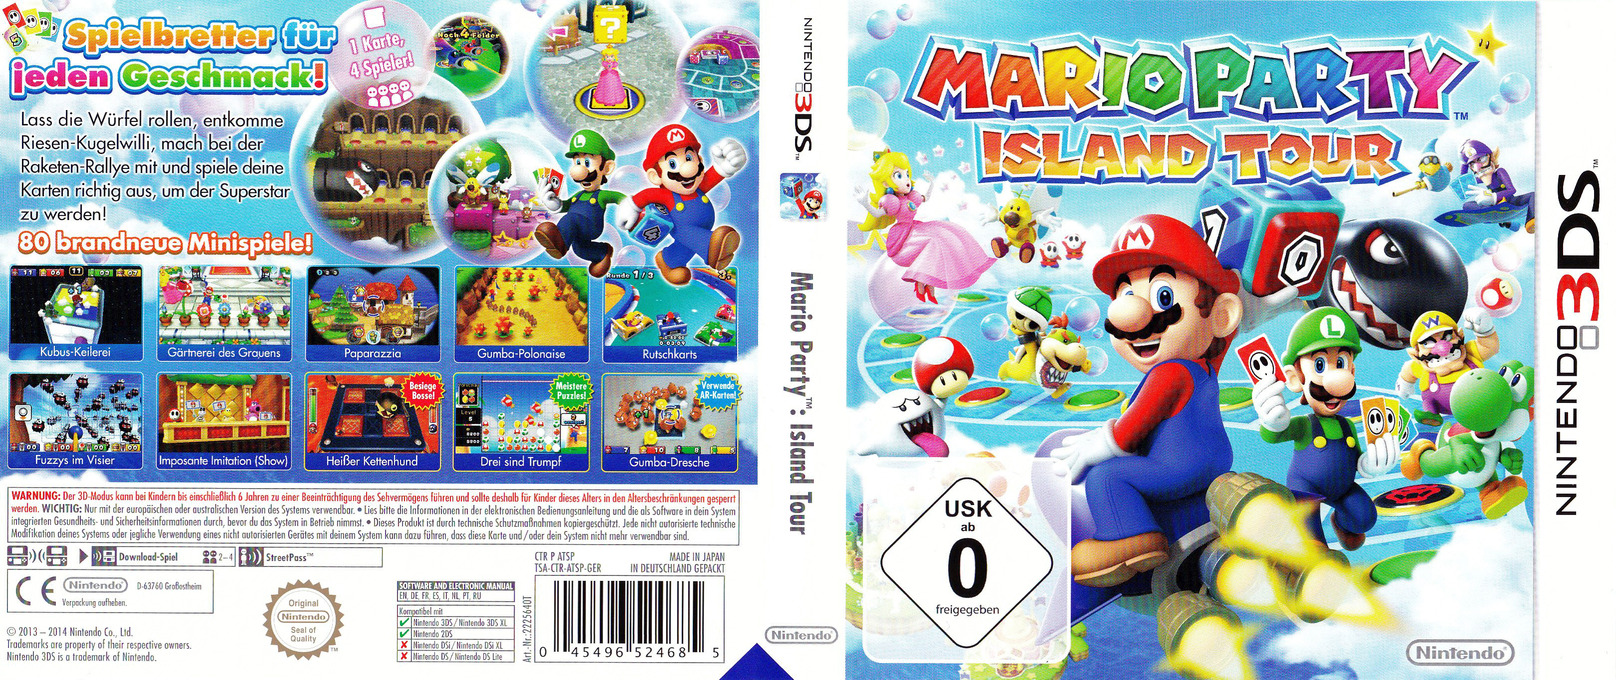 Mario Party Island Tour Ds